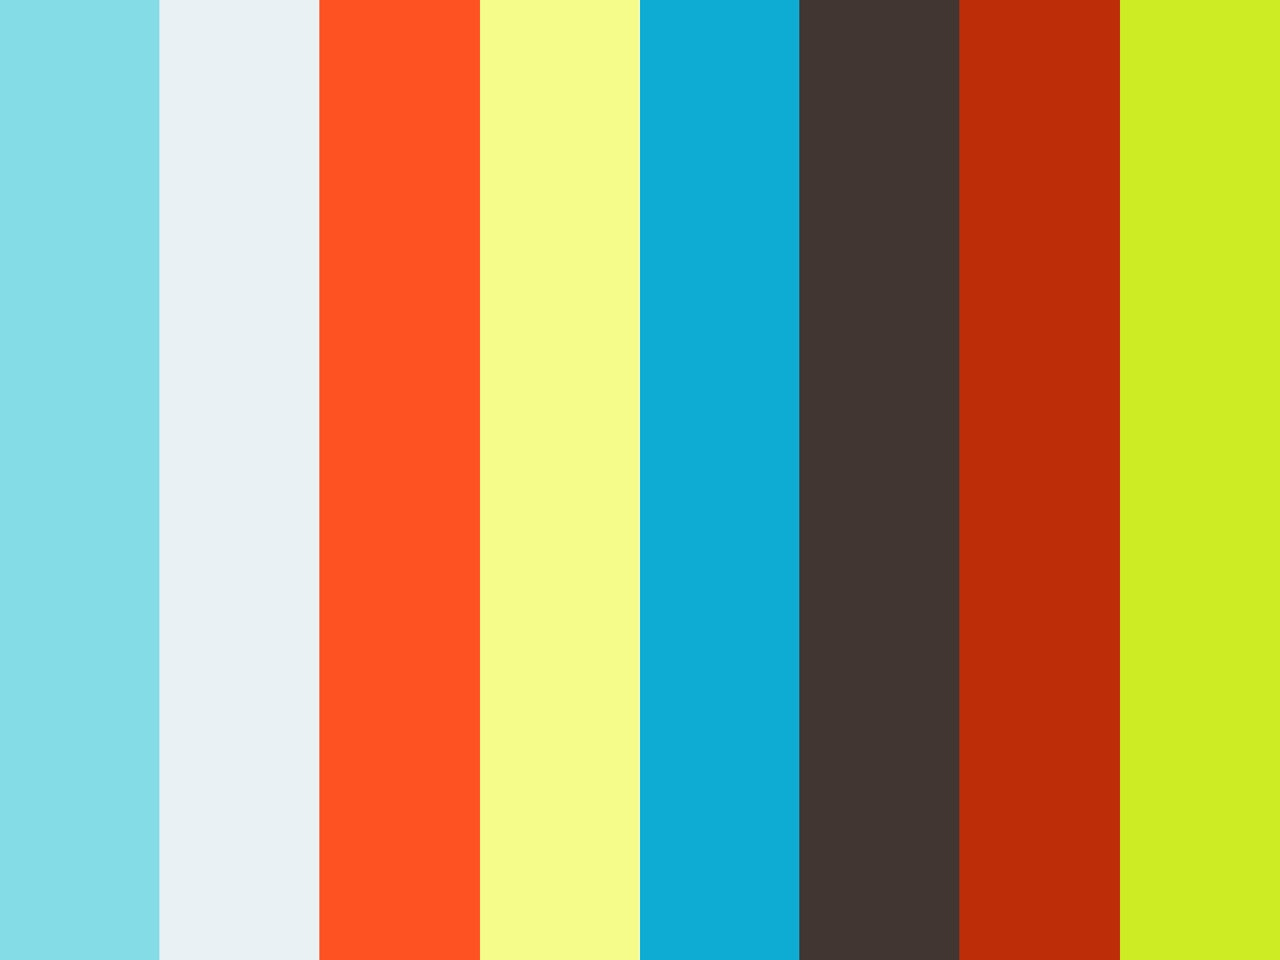 Board of Supervisors Meeting December 15, 2016